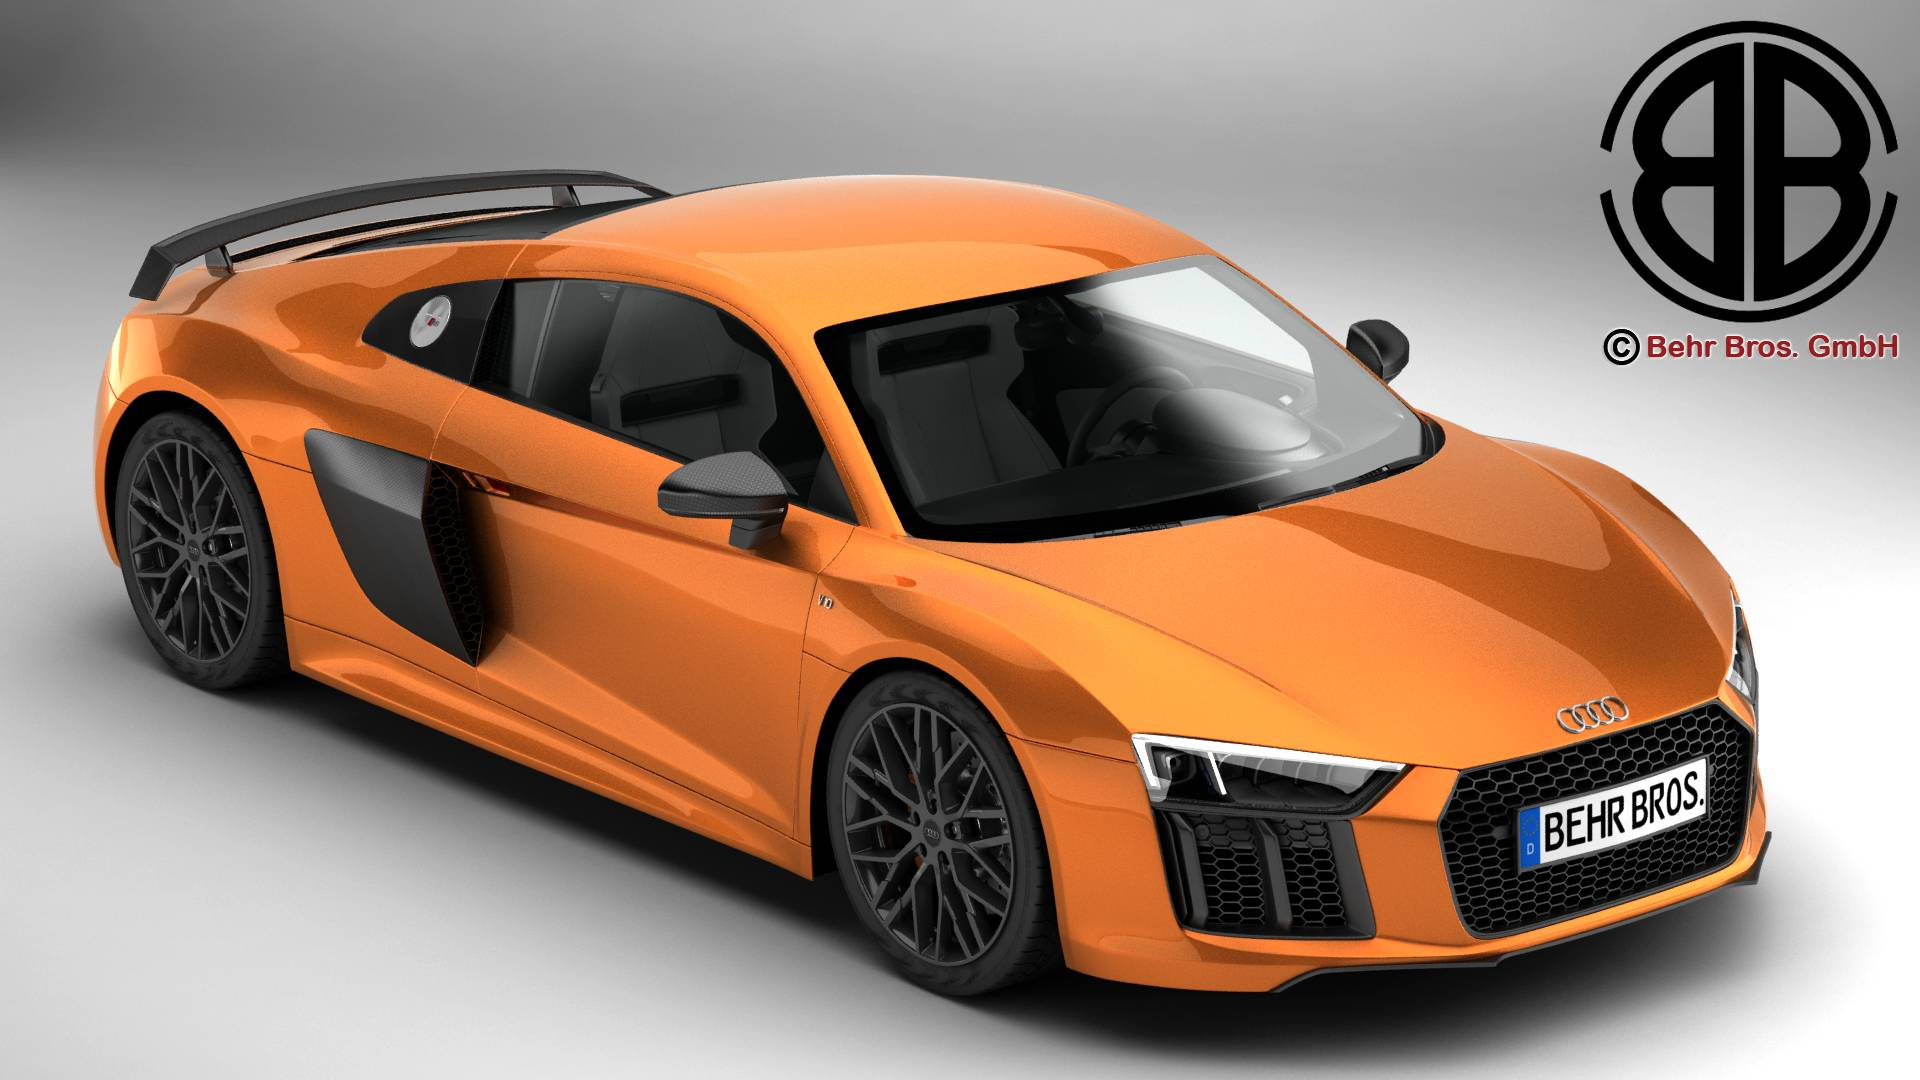 audi r8 v10 plus 2016 3d model 3ds max fbx c4d lwo ma mb obj 218512